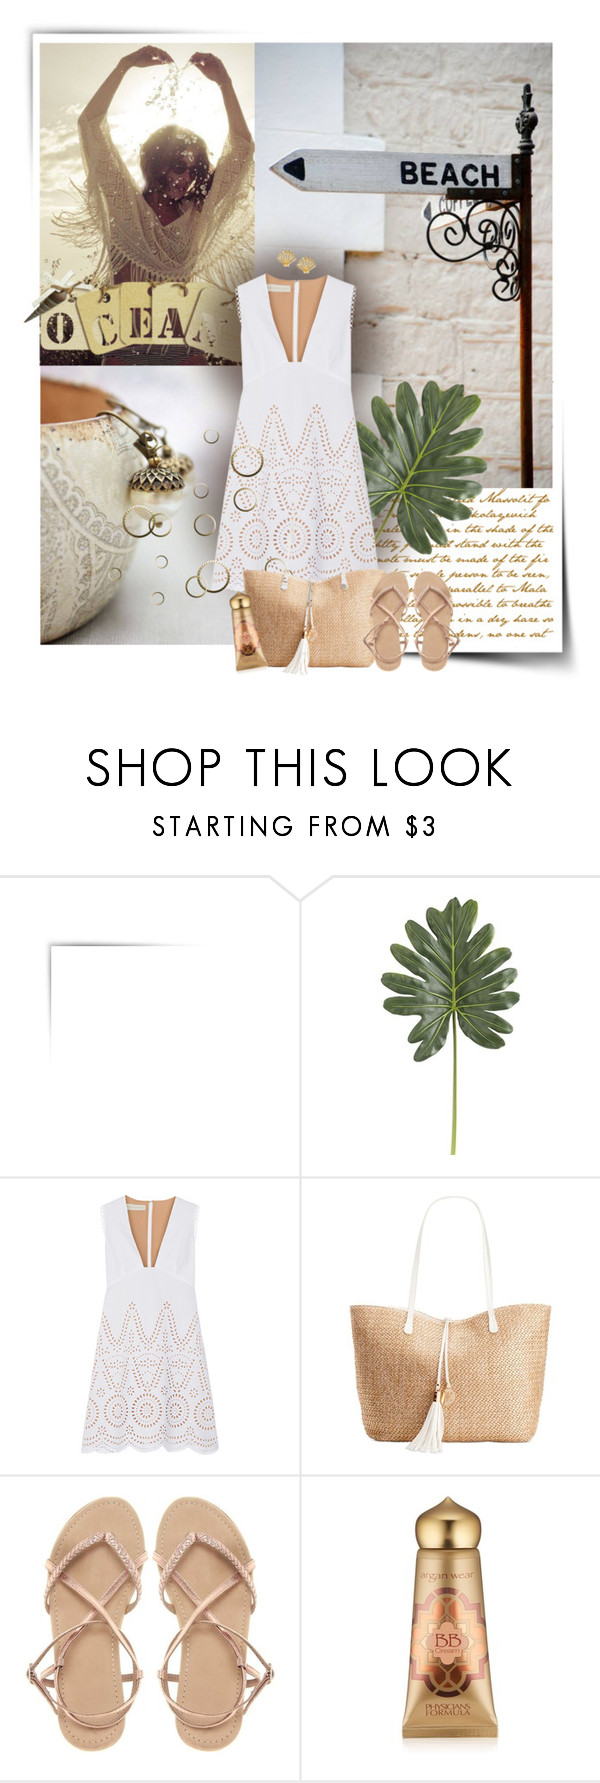 """""""Ocean"""" by anna-survillo ❤ liked on Polyvore featuring Pier 1 Imports, STELLA McCARTNEY, INC International Concepts, ASOS, Physicians Formula, Kate Spade and StellaMcCartney"""